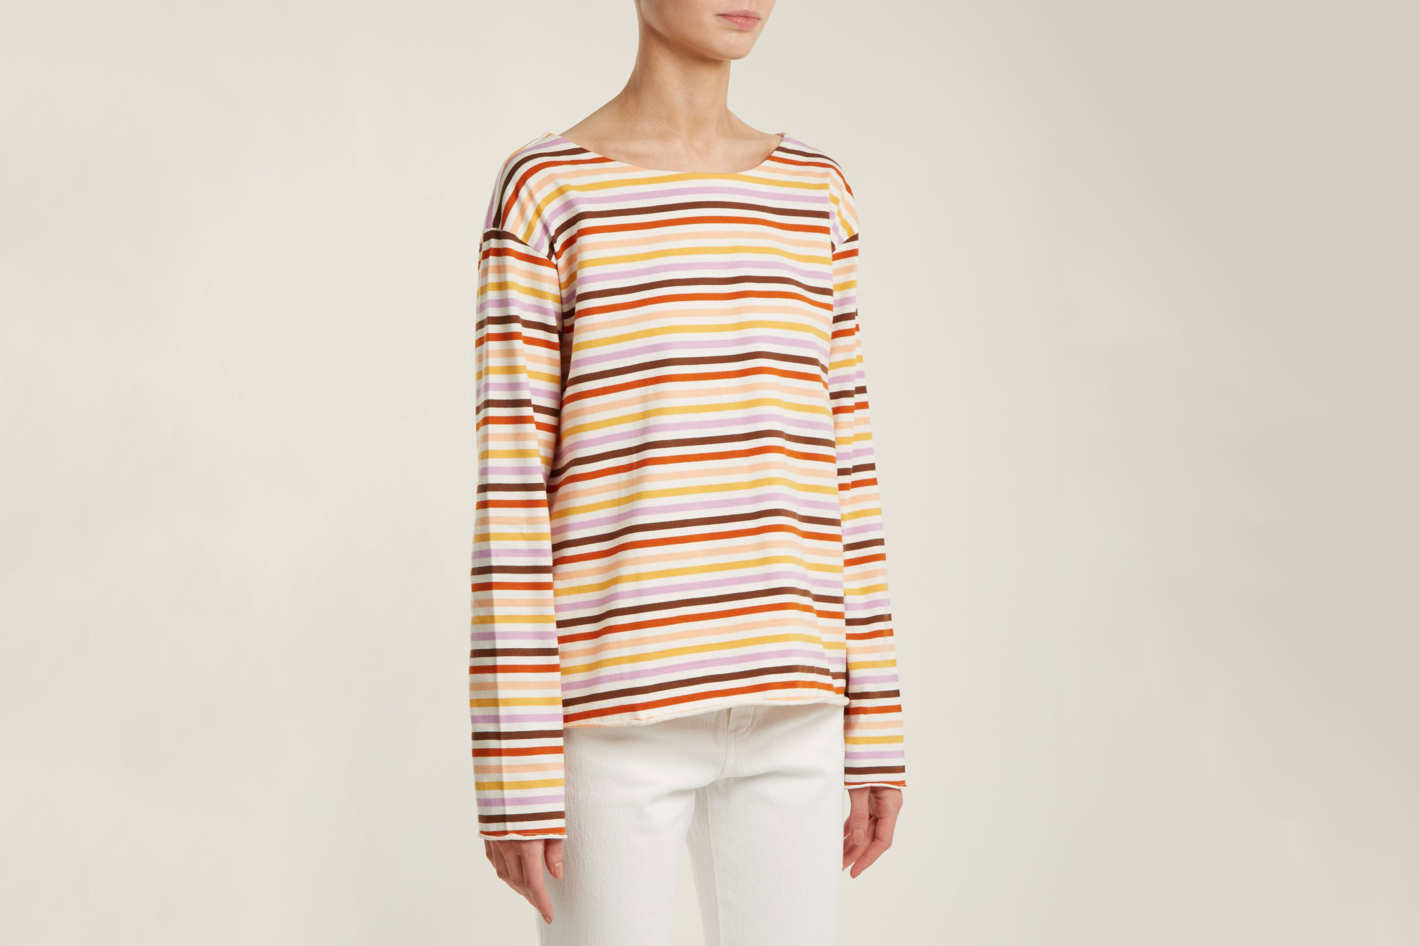 M.I.H. Jeans Simple Striped Cotton-jersey Top